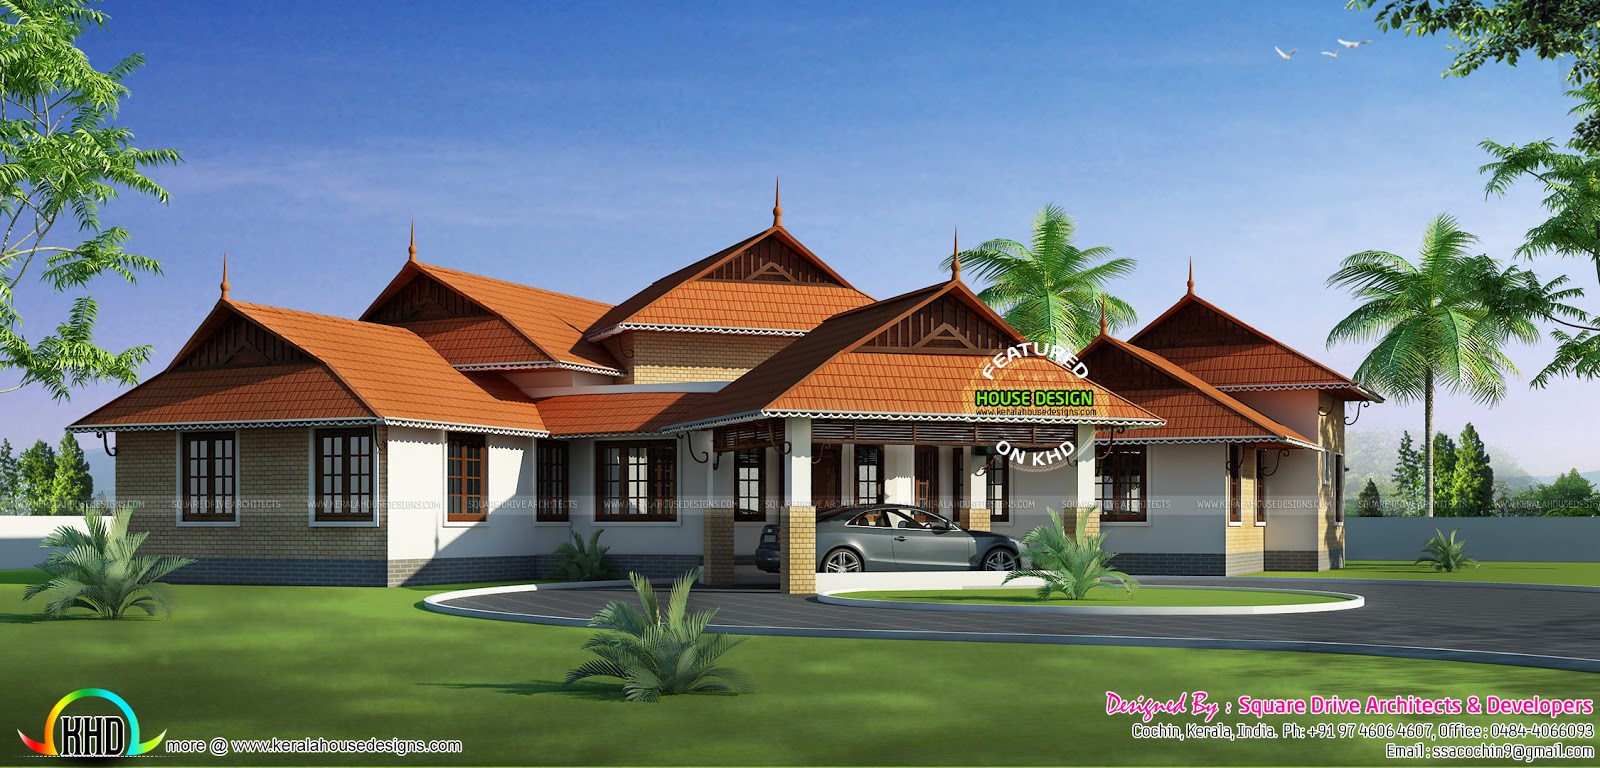 Khd homes joy studio design gallery best design for House plan kerala style free download